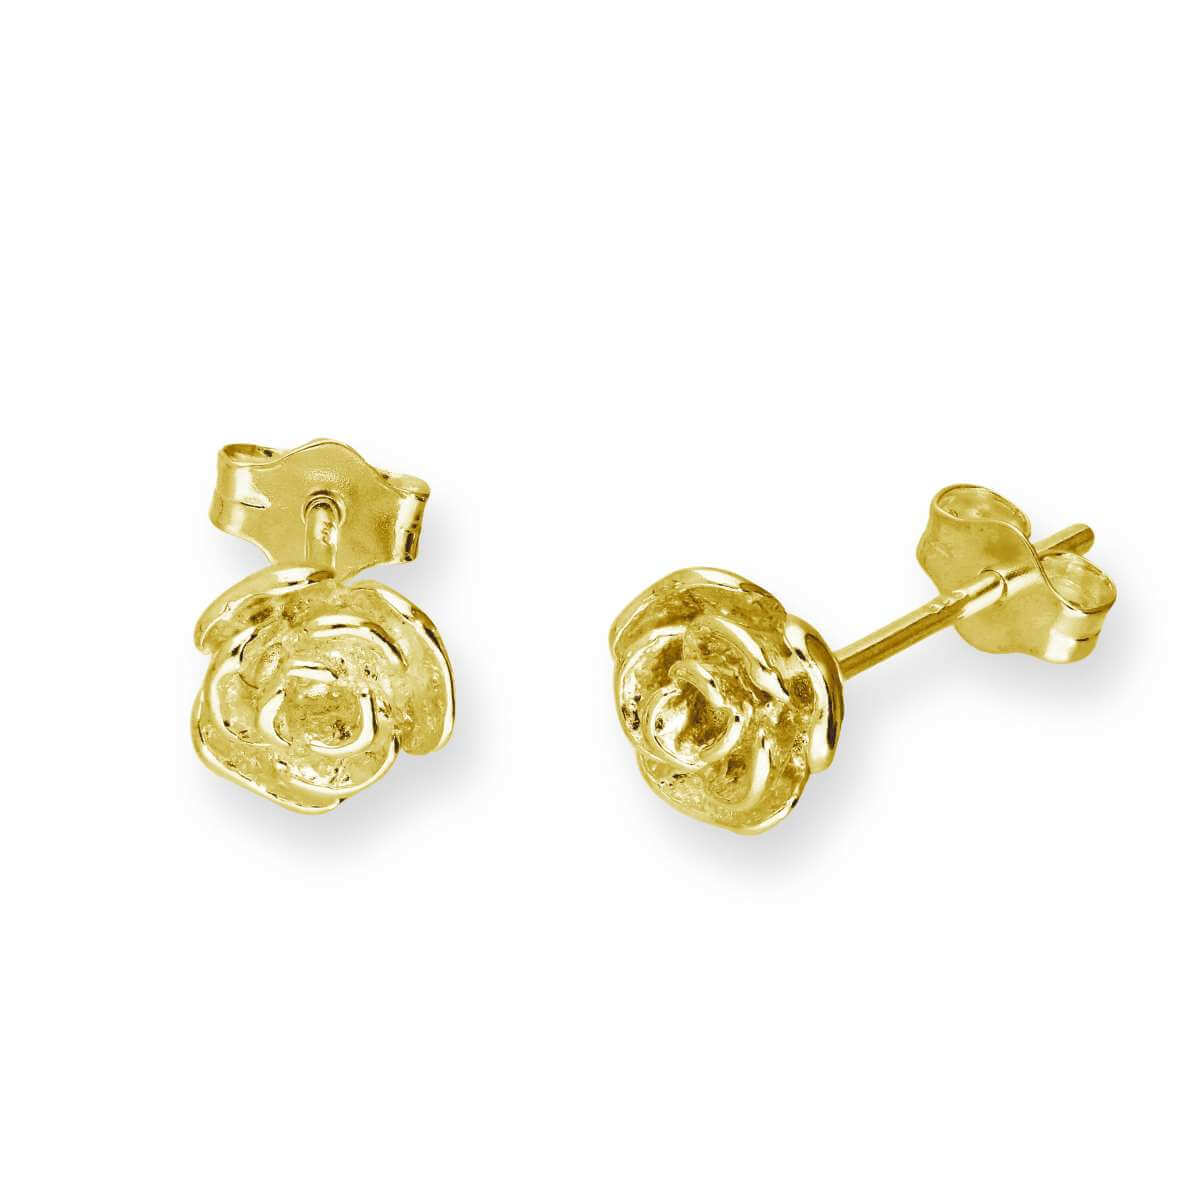 Gold Plated Sterling Silver Rose Bud Stud Earrings